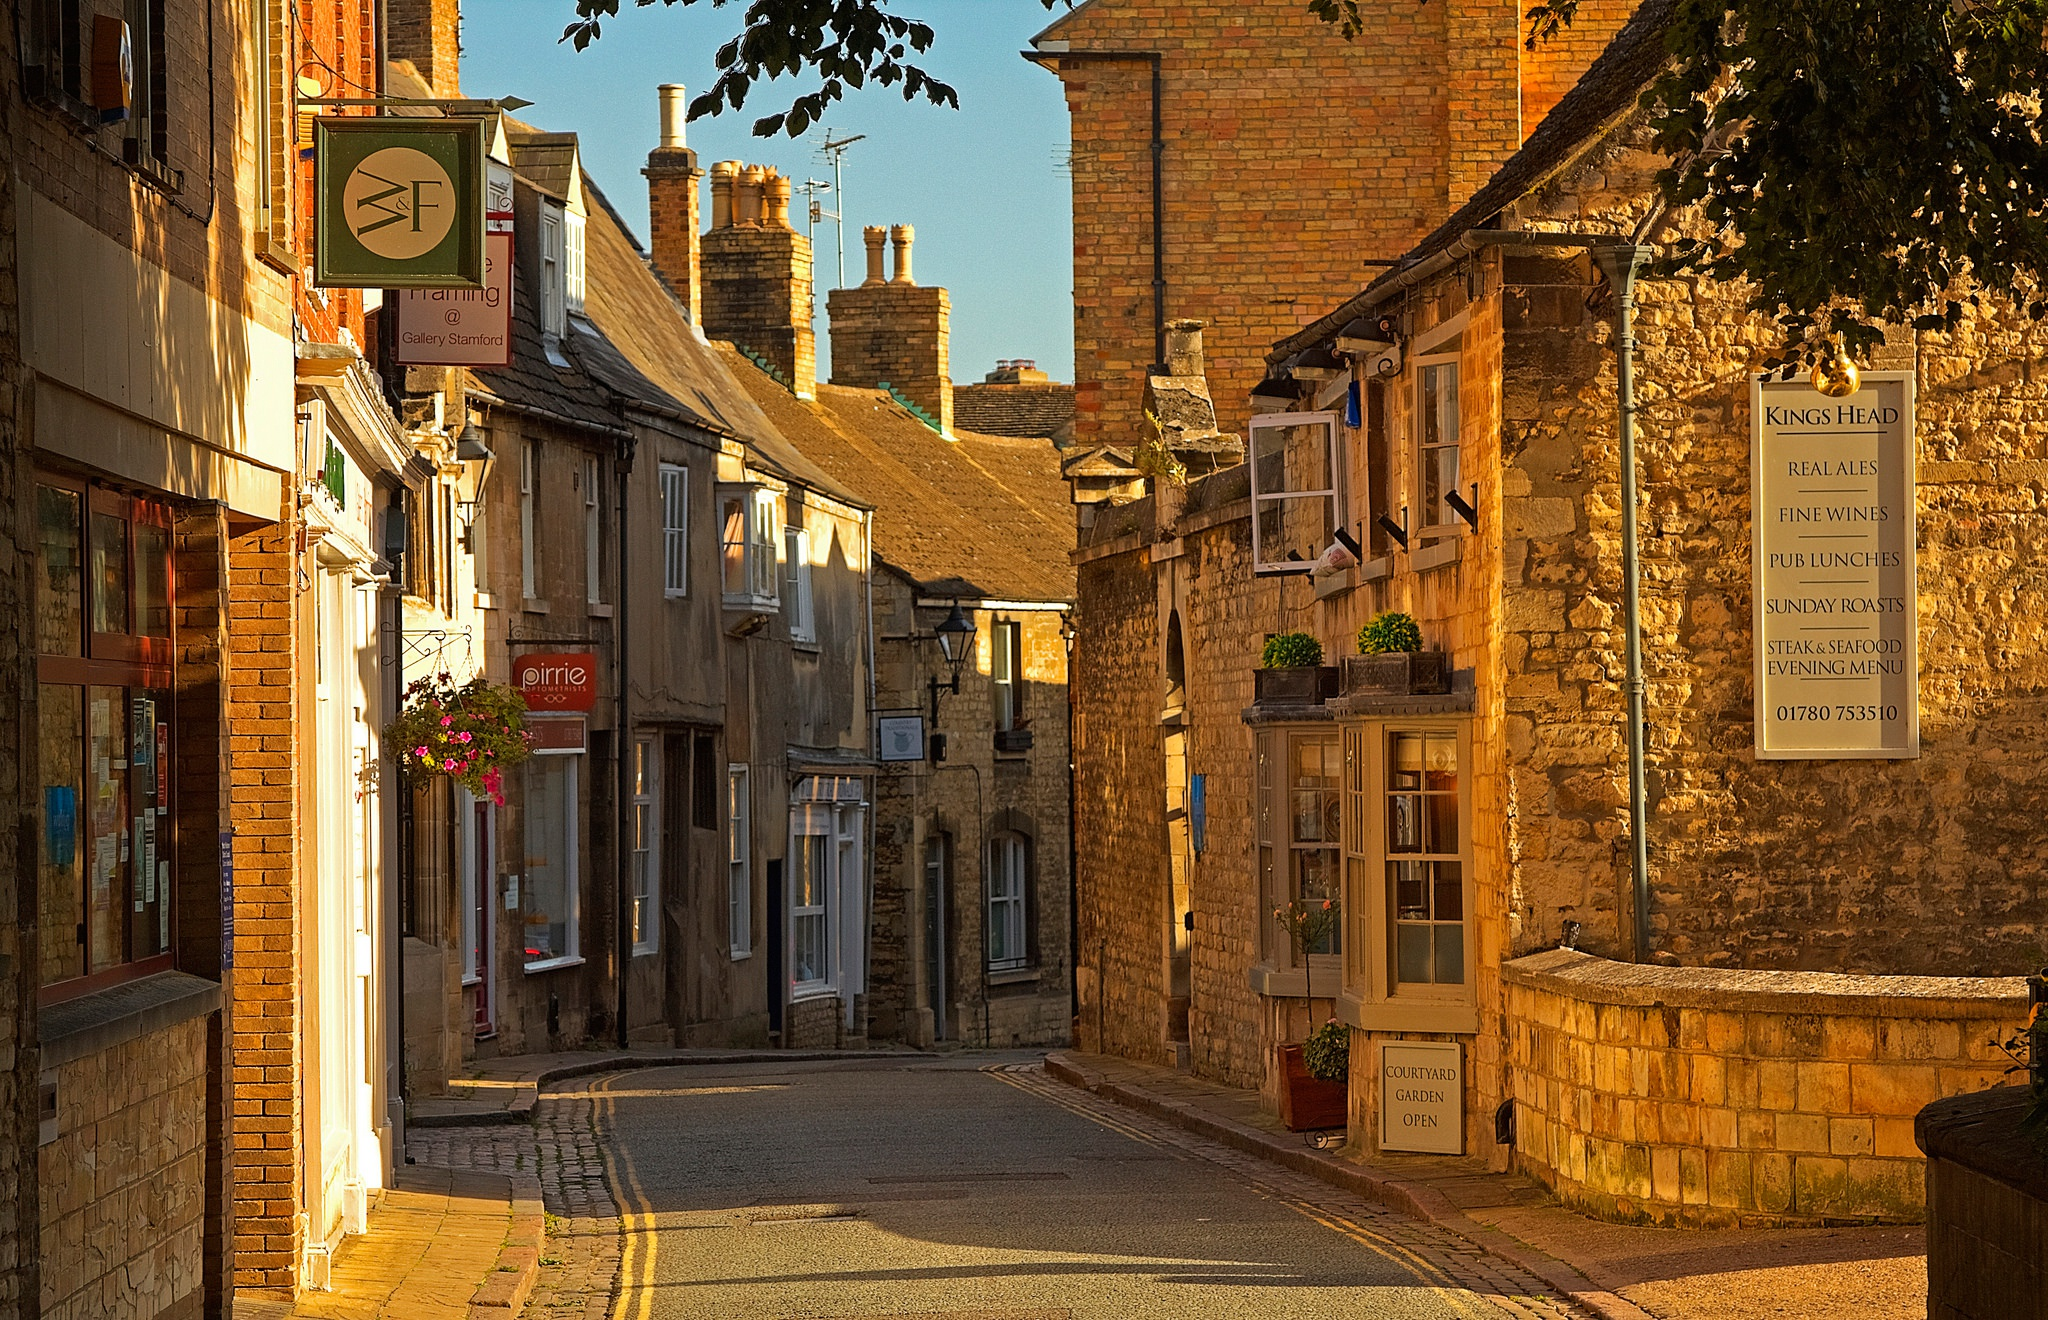 Lincolnshires premier kitchens supplier The Stamford Pictures of stamford lincolnshire